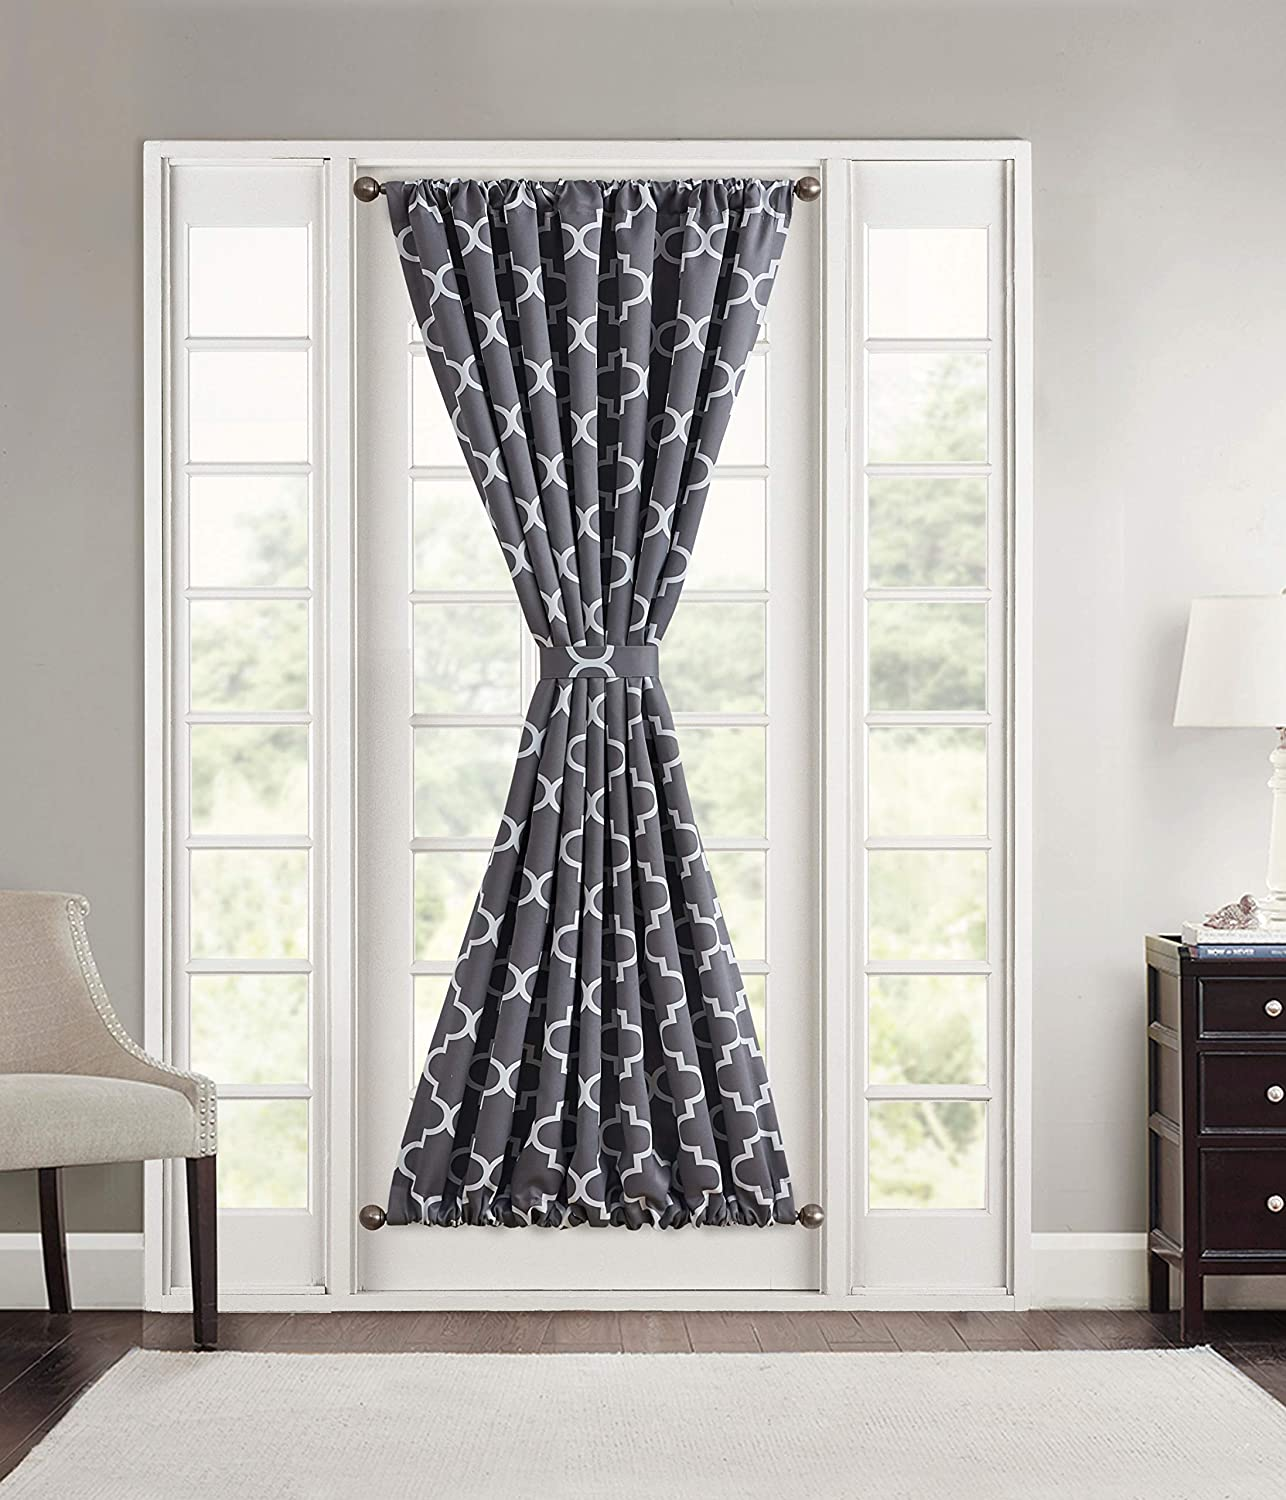 HLC.ME Lattice Print Blackout Sidelight French Door Curtain Panel - Thermal Insulation Provides Energy Efficiency and Privacy for Sidelight Patio Doors - 1 Panel (54 W x 72 L, Grey)